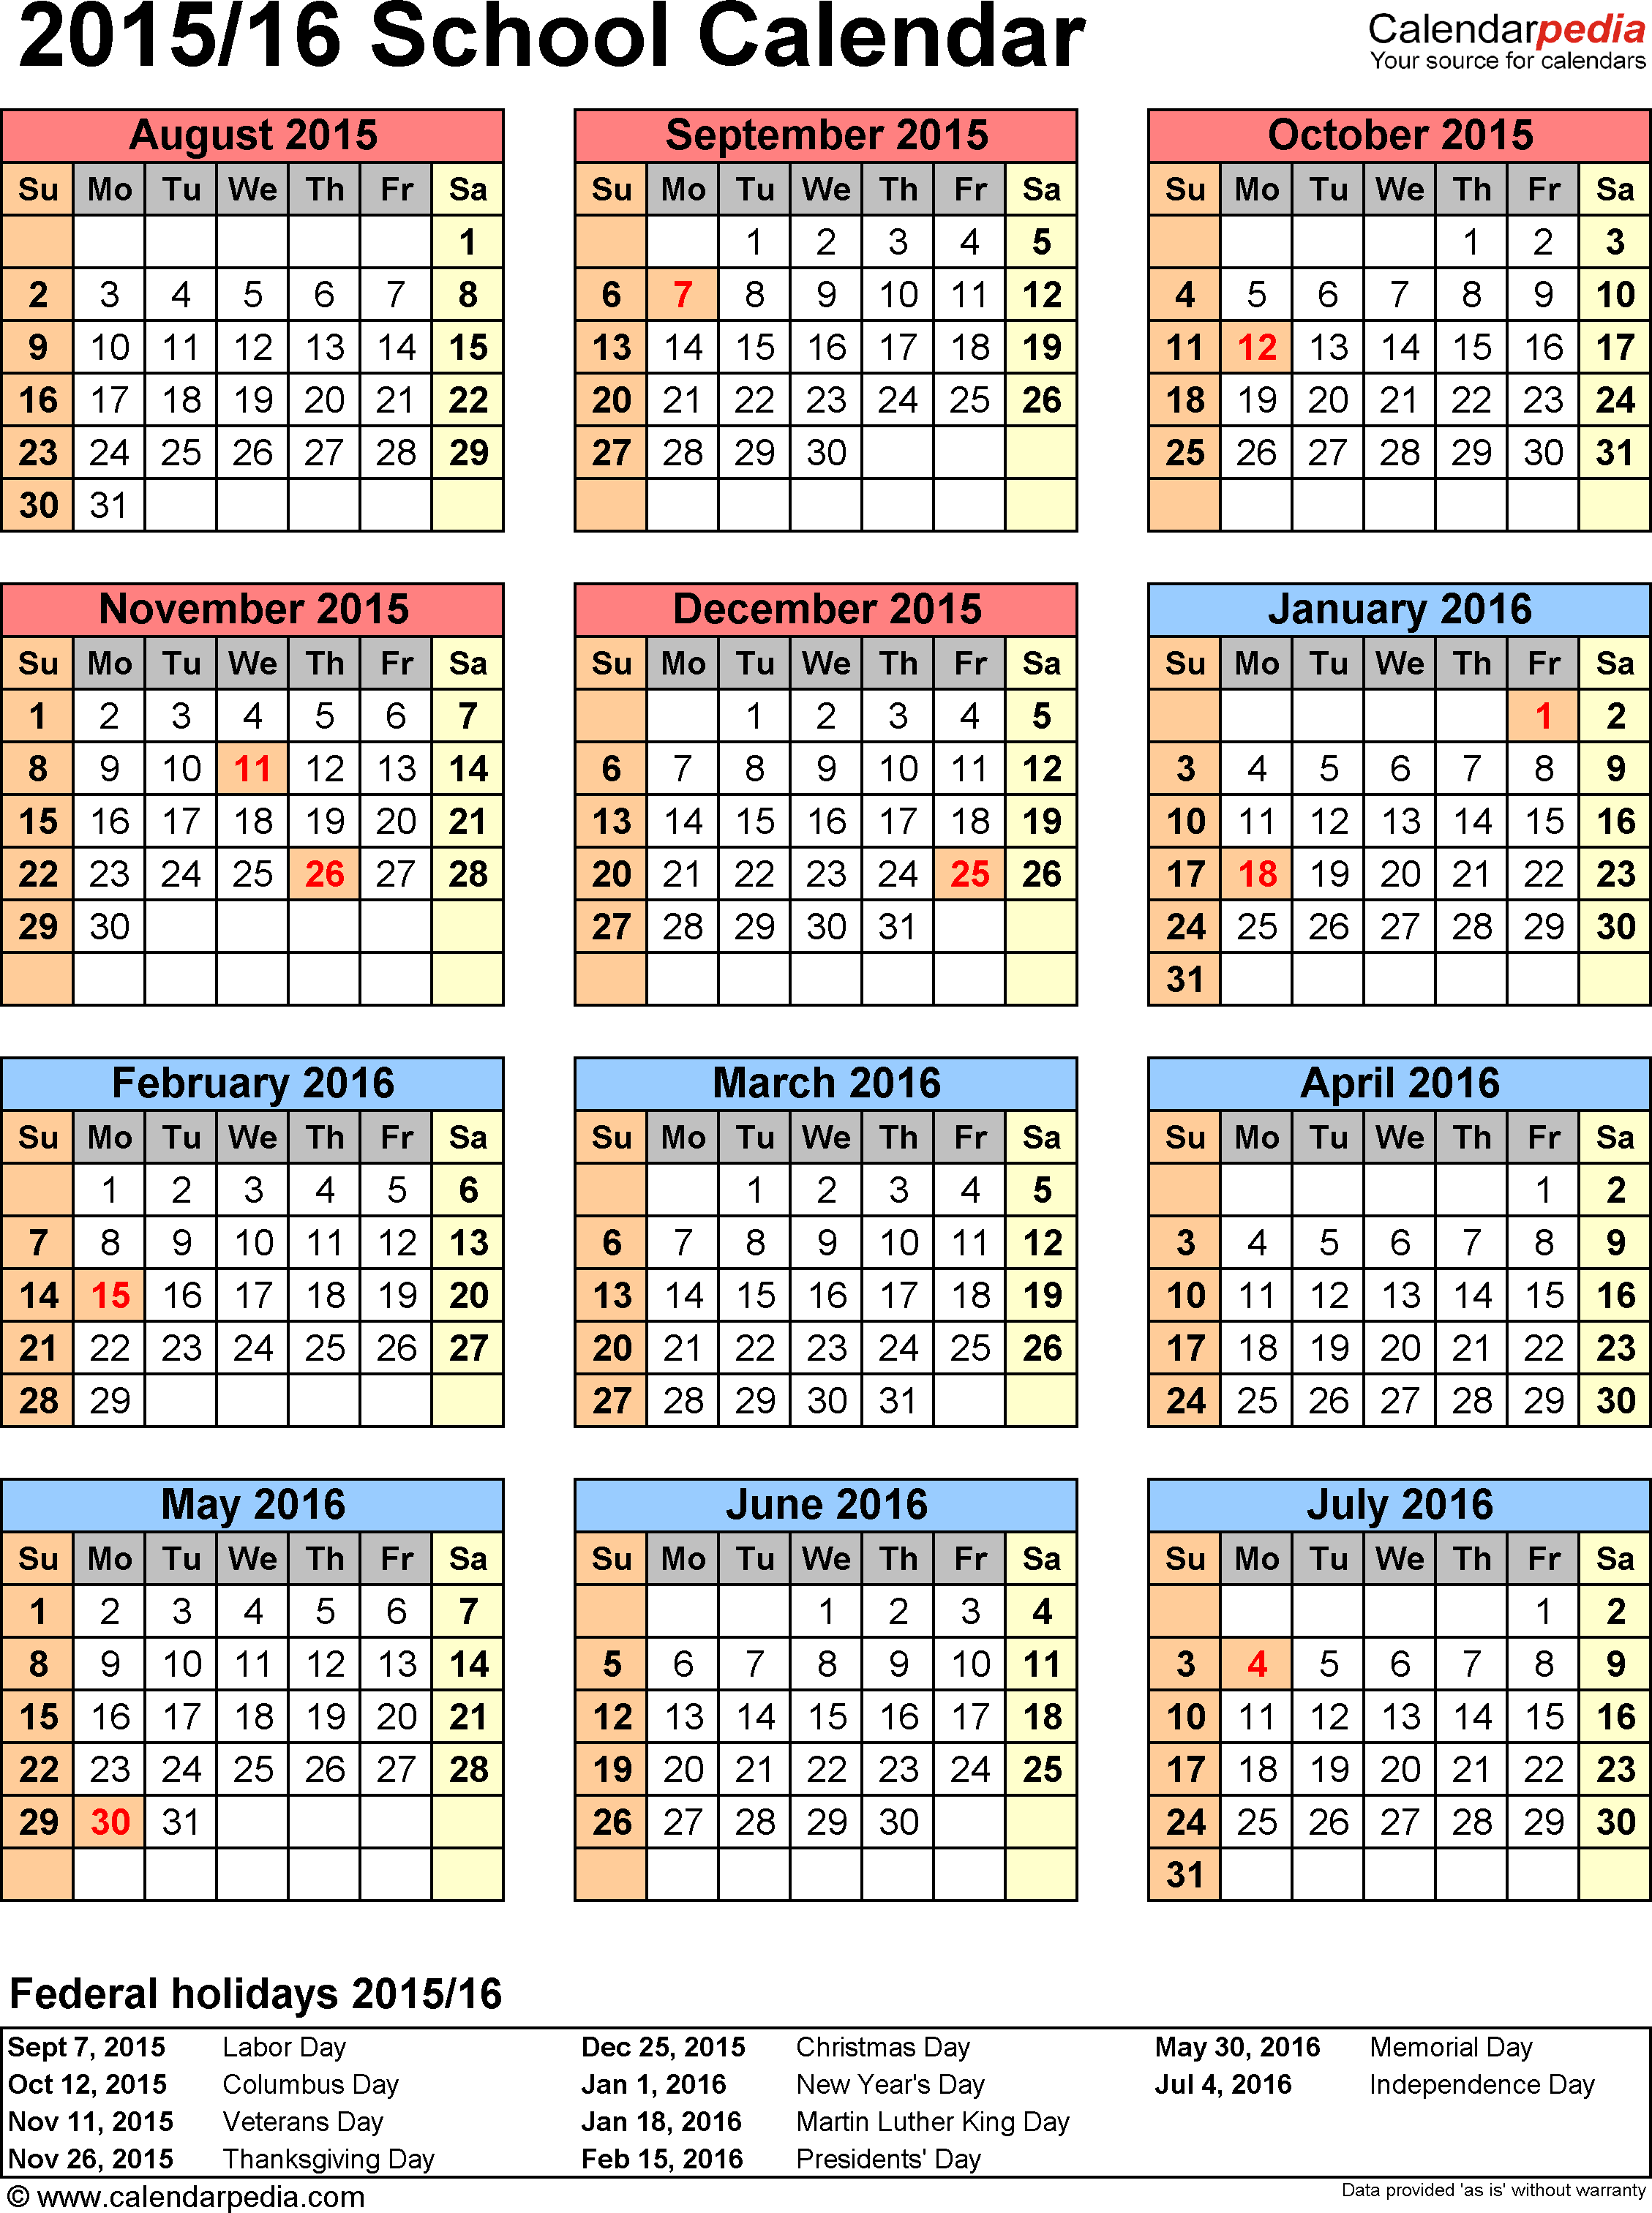 Template 7: School calendar 2015/16 for Excel, portrait orientation, year at a glance, 1 page